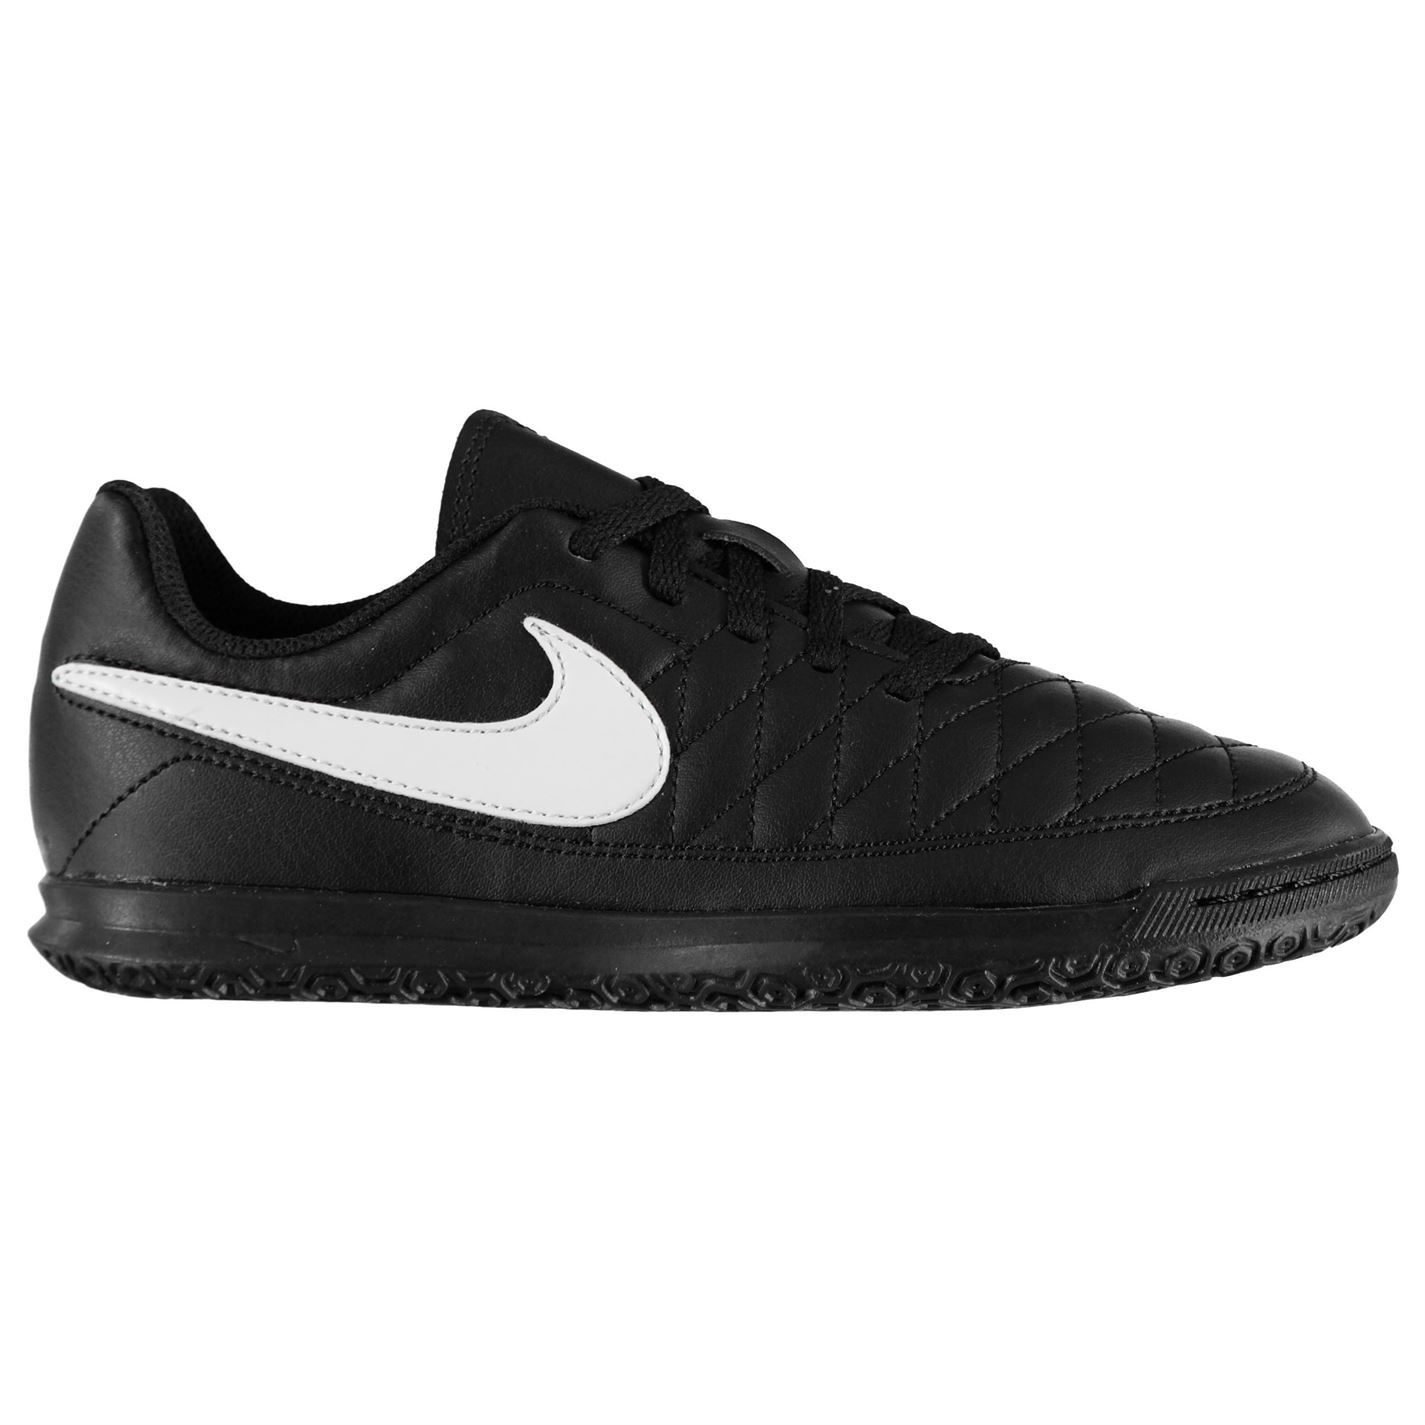 Nike-majestry-Indoor-Court-Football-Baskets-enfant-foot-baskets-chaussures miniature 11